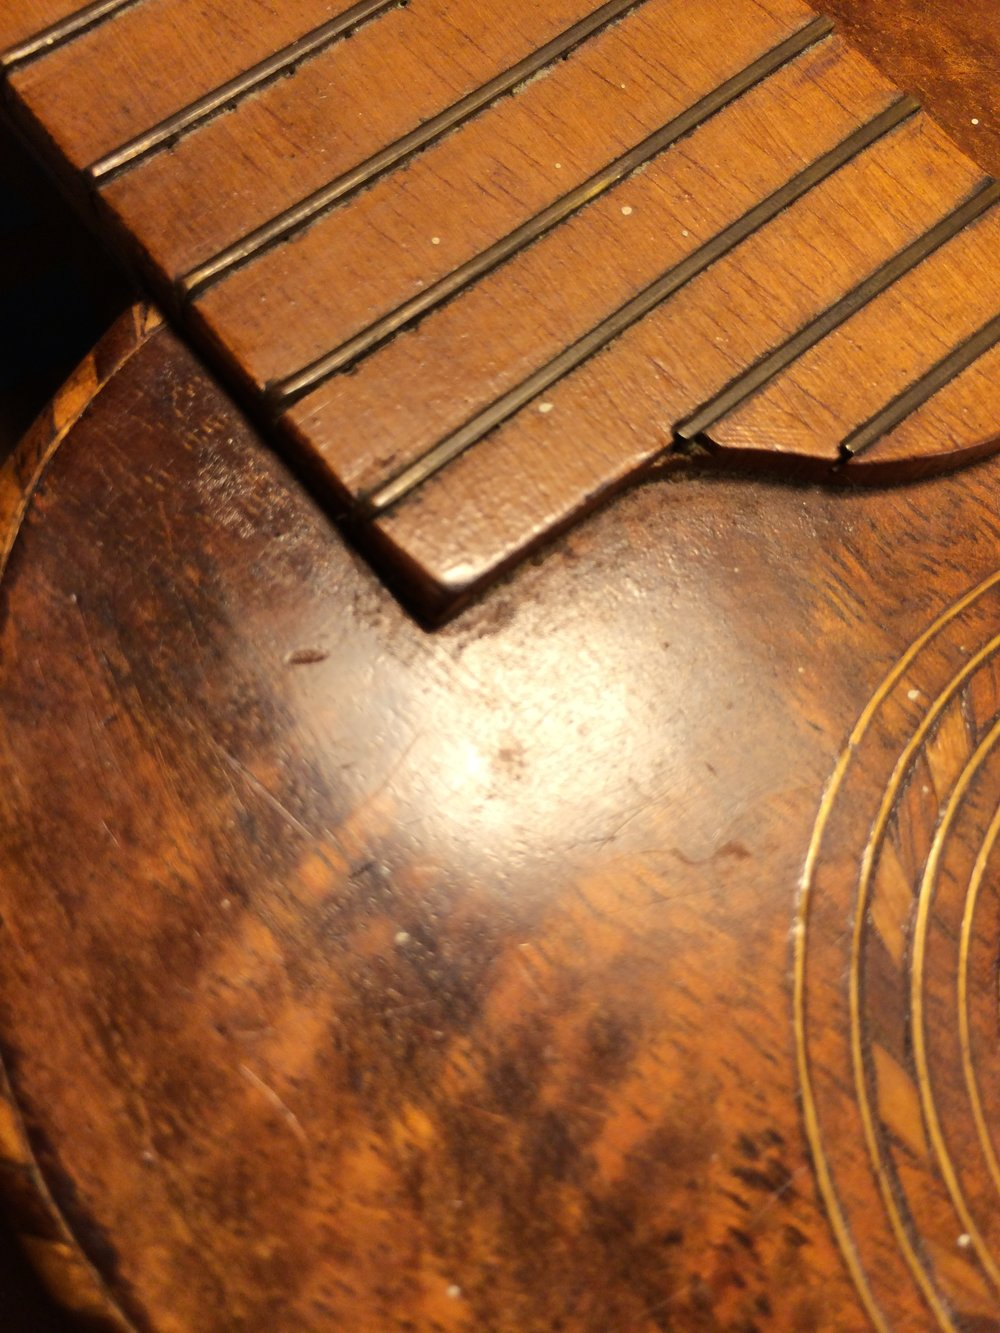 There was early speculation that this might have been the first Hawaiian uke to use a superficial fingerboard.